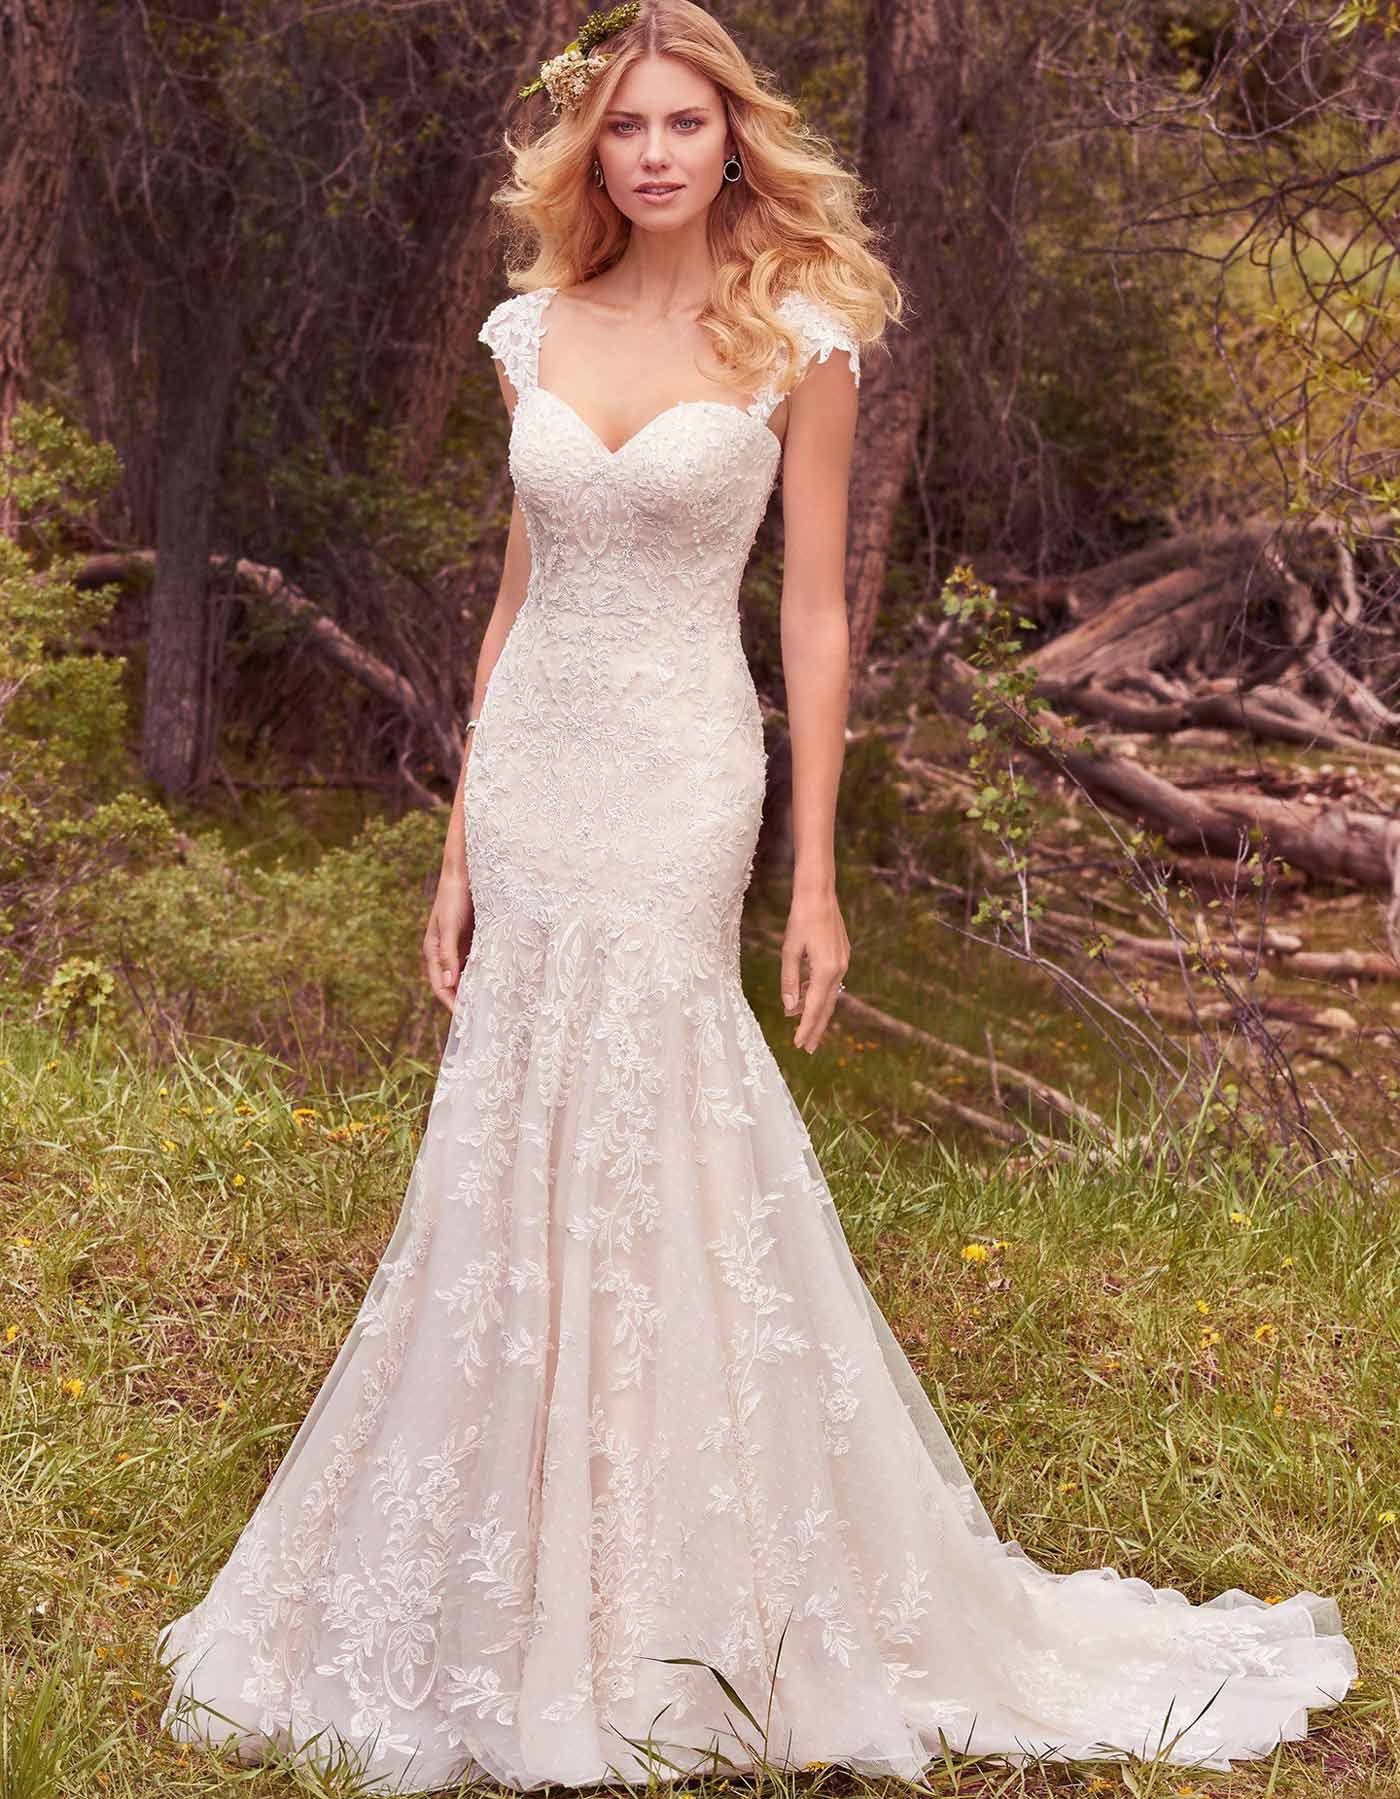 Lace, sweetheart wedding dress. Maggie Sottero, Larissa